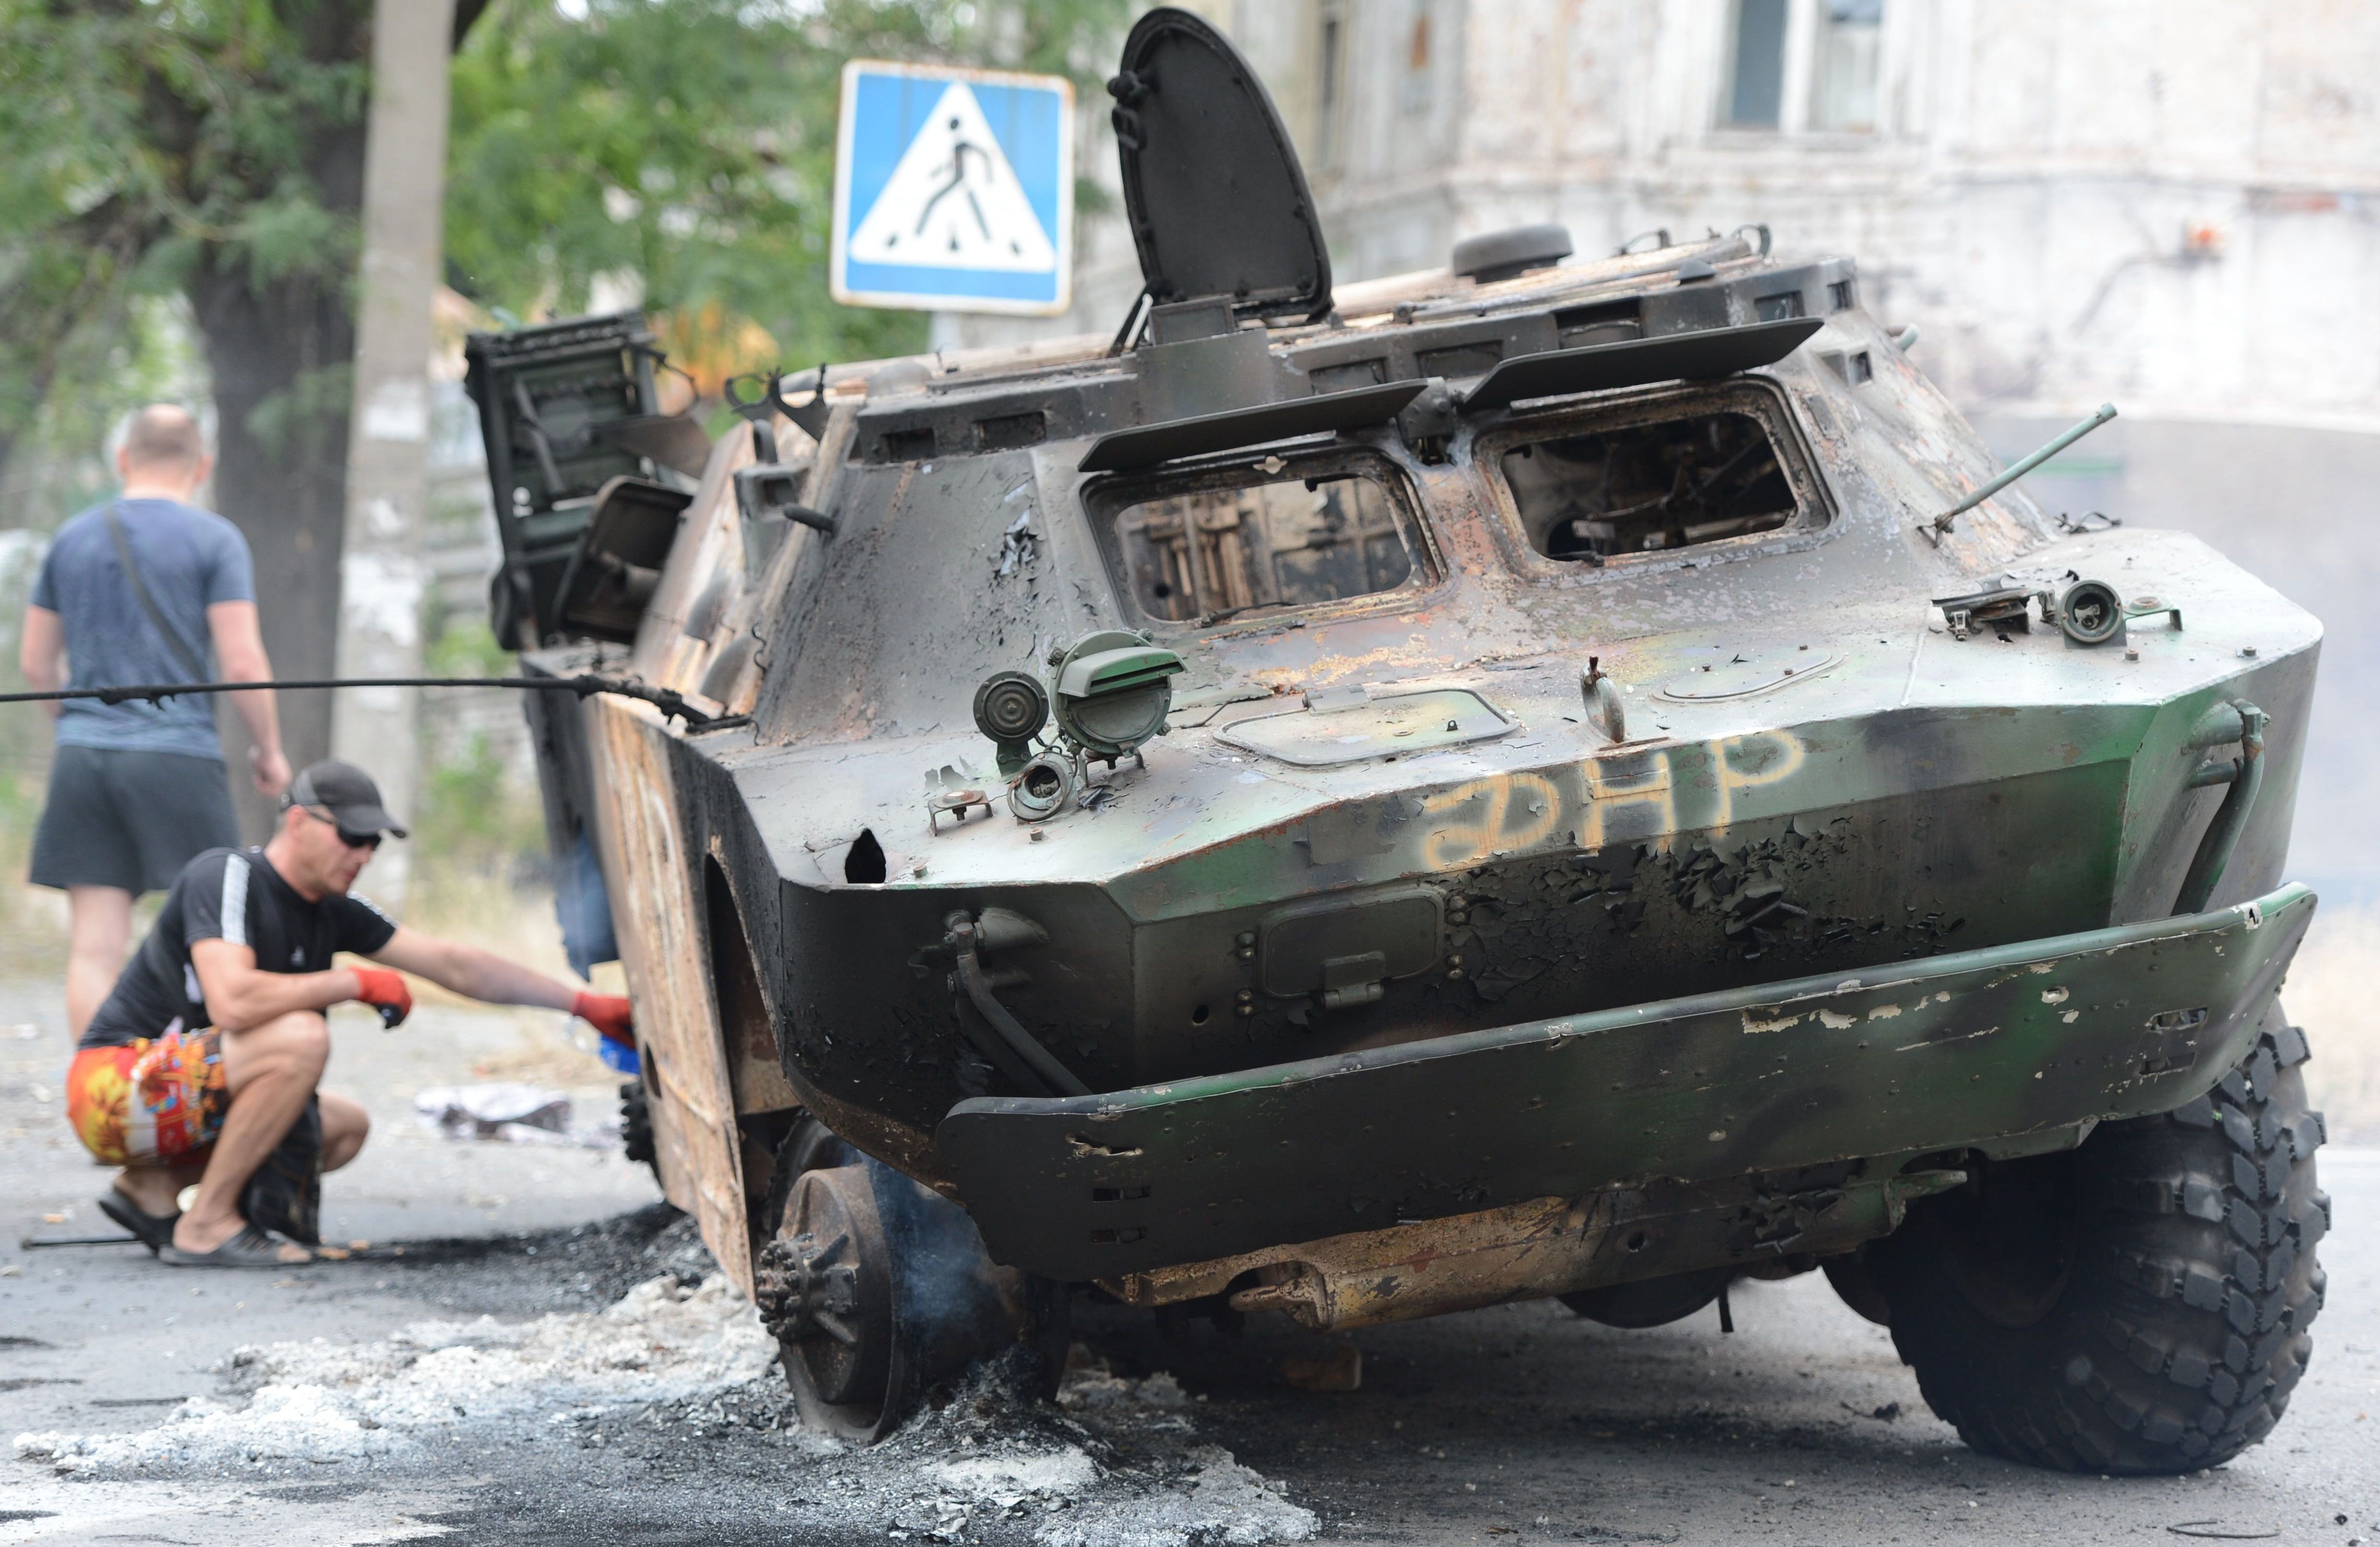 An armored vehicle belonging to pro-Russian separatists, destroyed in Friday's battle for control of the port city of Mariupol.